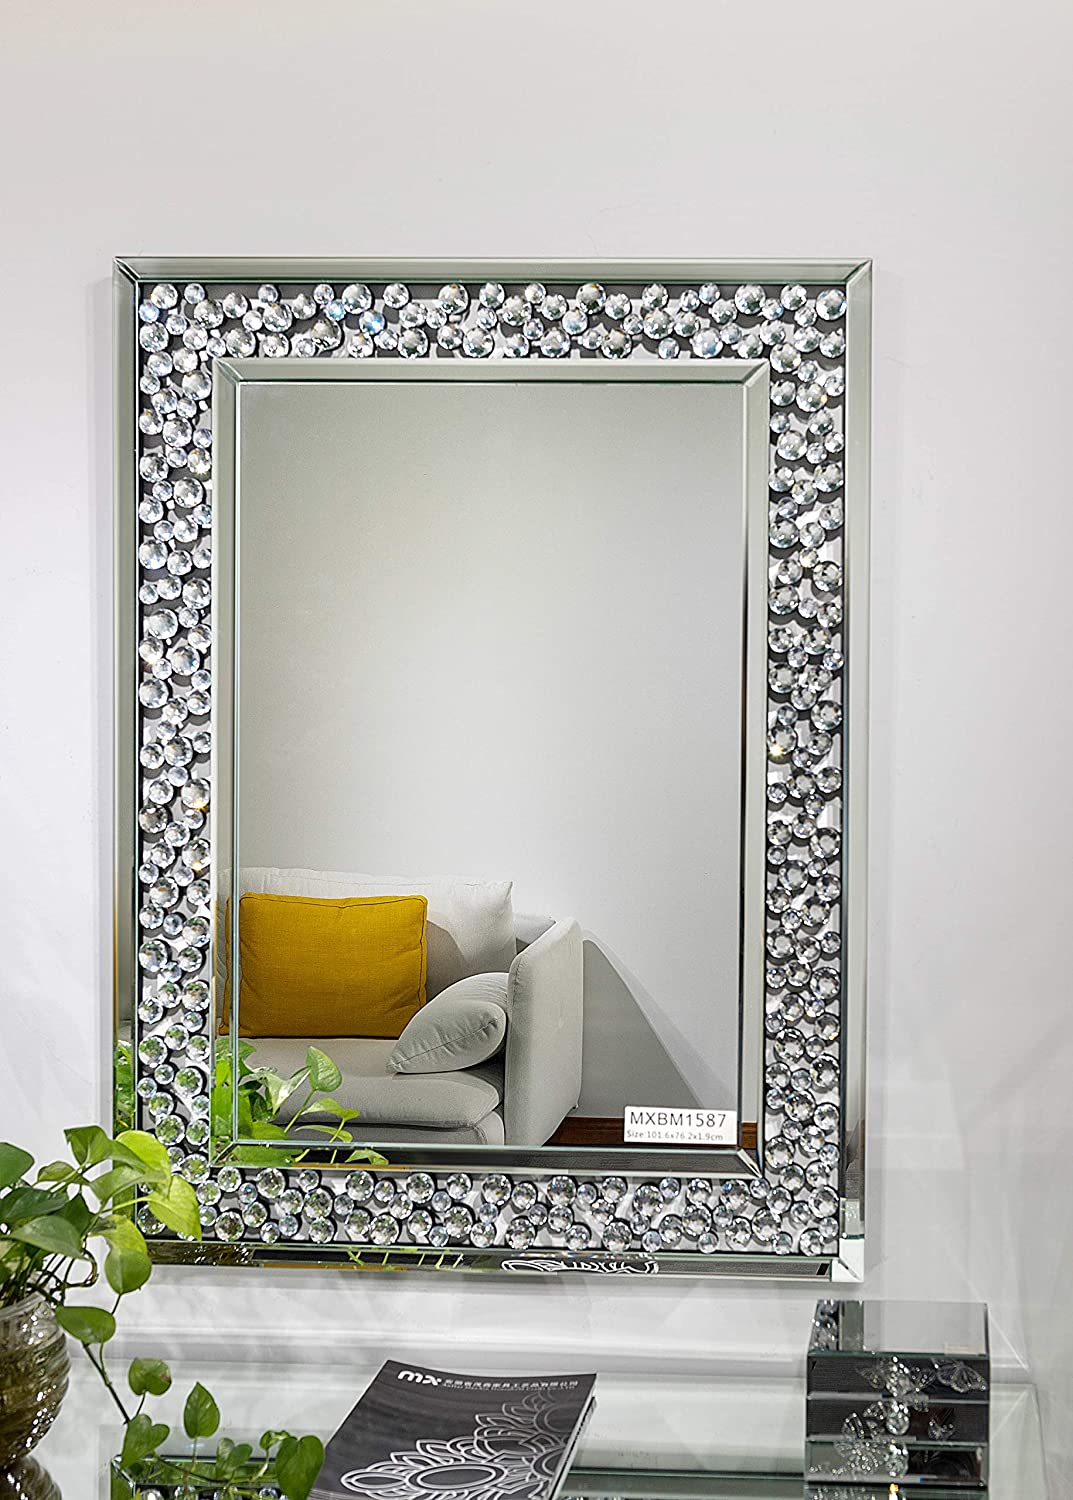 """Art Decorative Wall Mirrors Large Grecian Venetian Mirror for Hotel Home Vanity Sliver Mirror (27.5"""" x 43.3"""")"""